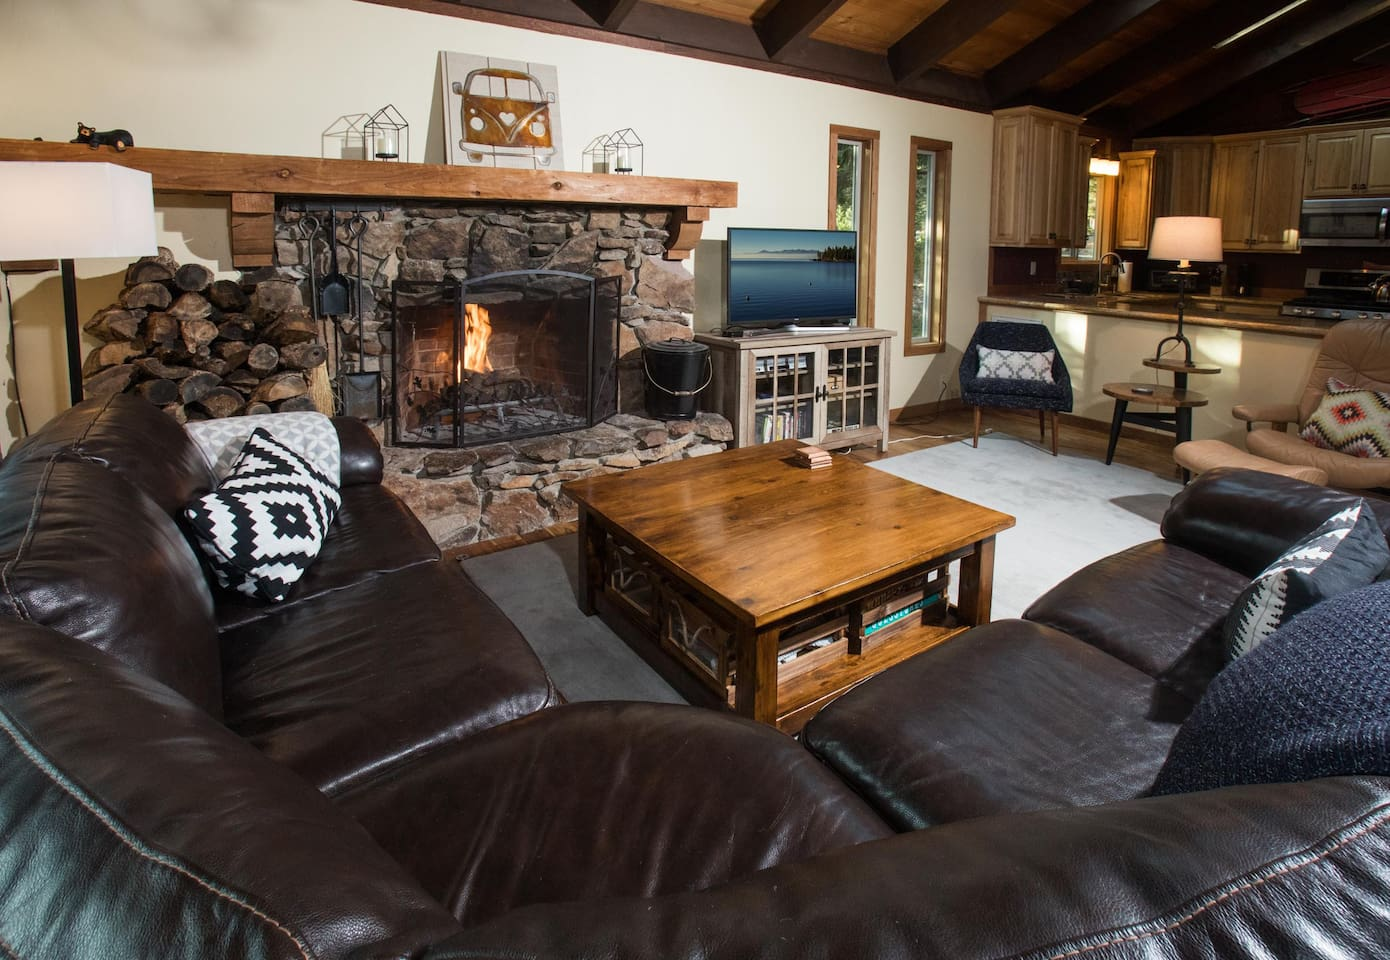 Couch fireplace and TV area